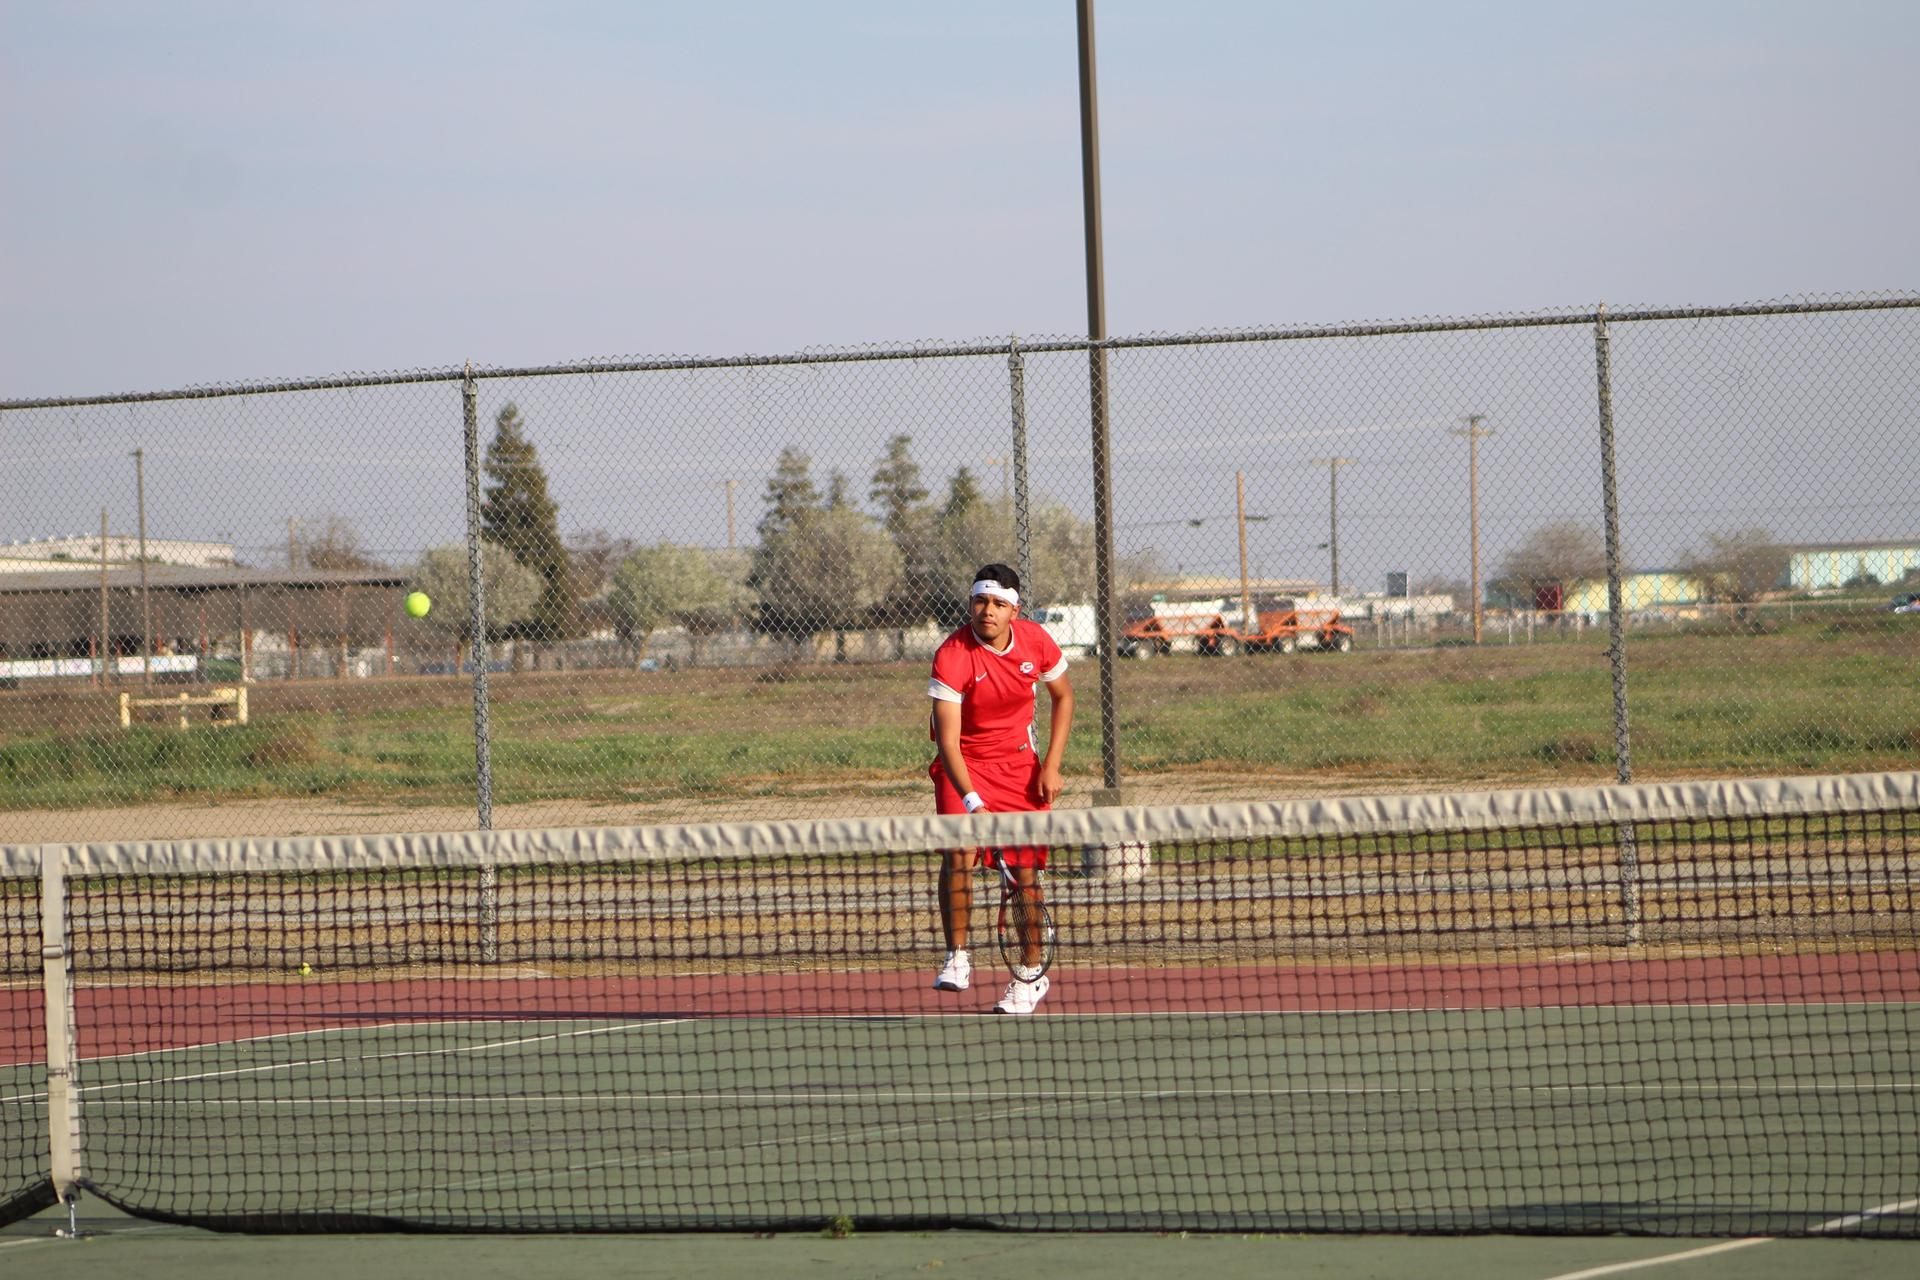 boys playing tennis against Madera South